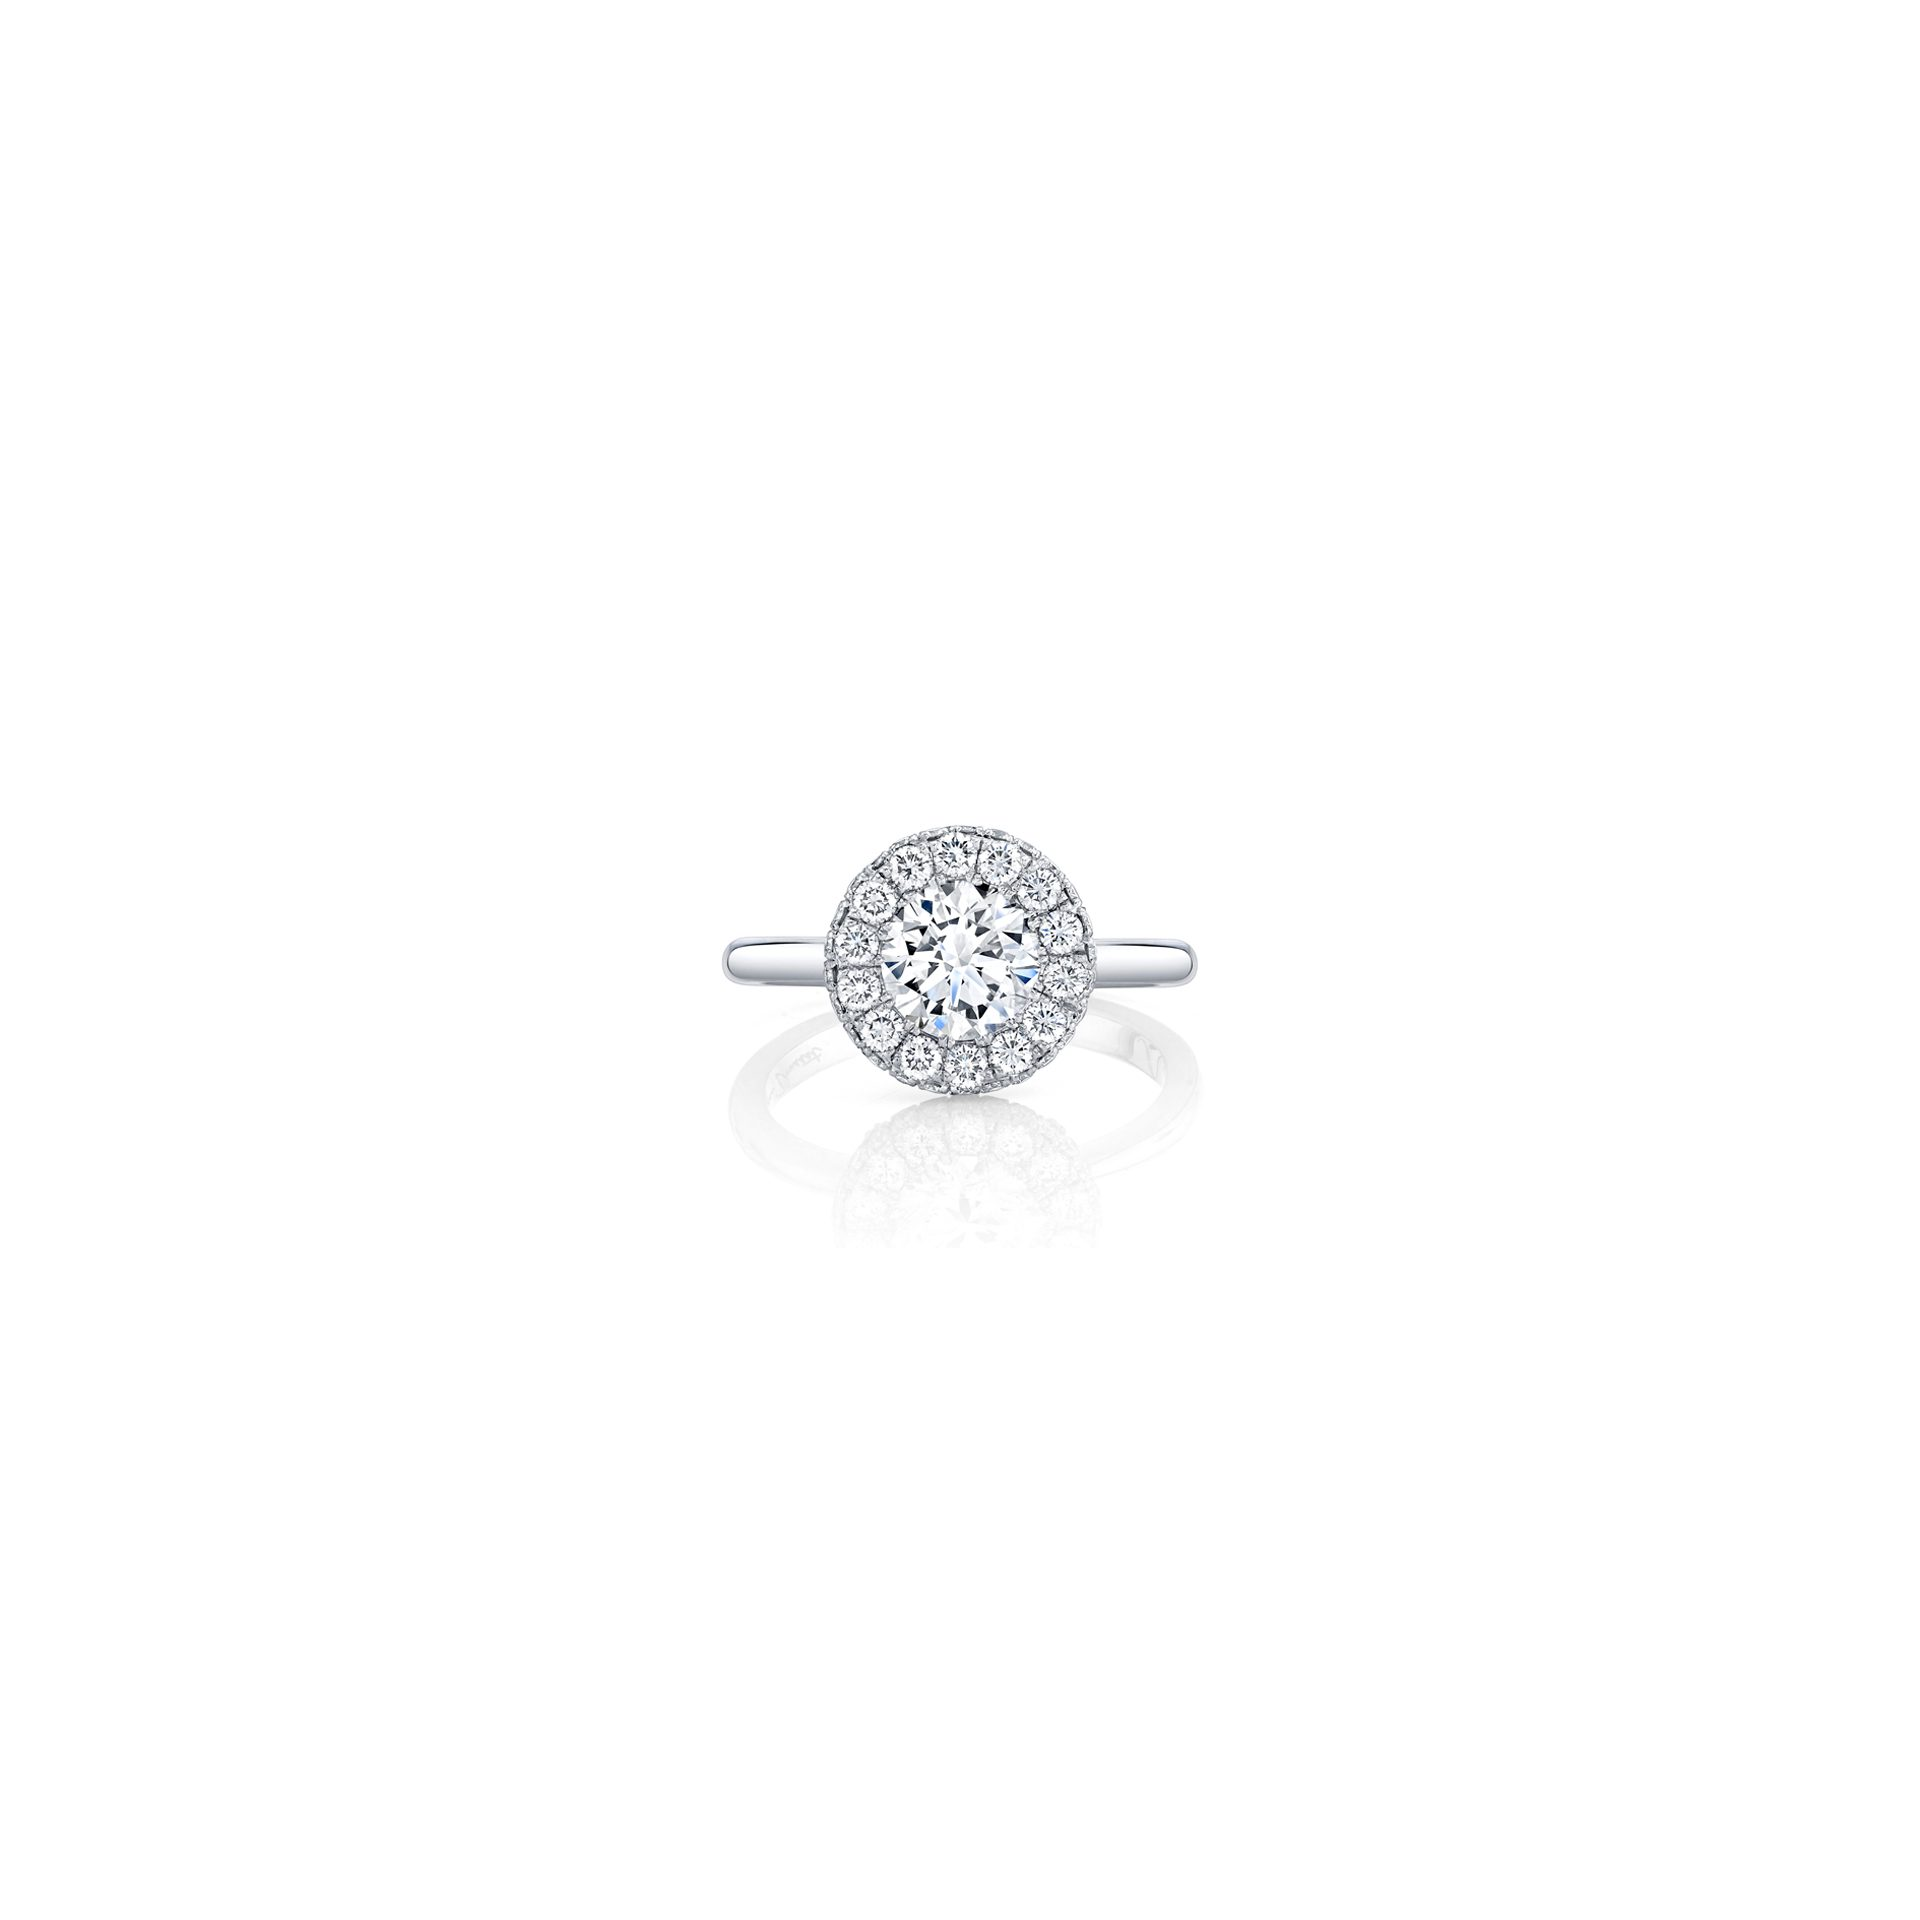 Colette Round Brilliant Seamless Halo® Engagement Ring with a solid band in 18k White Gold Front View by Oui by Jean Dousset